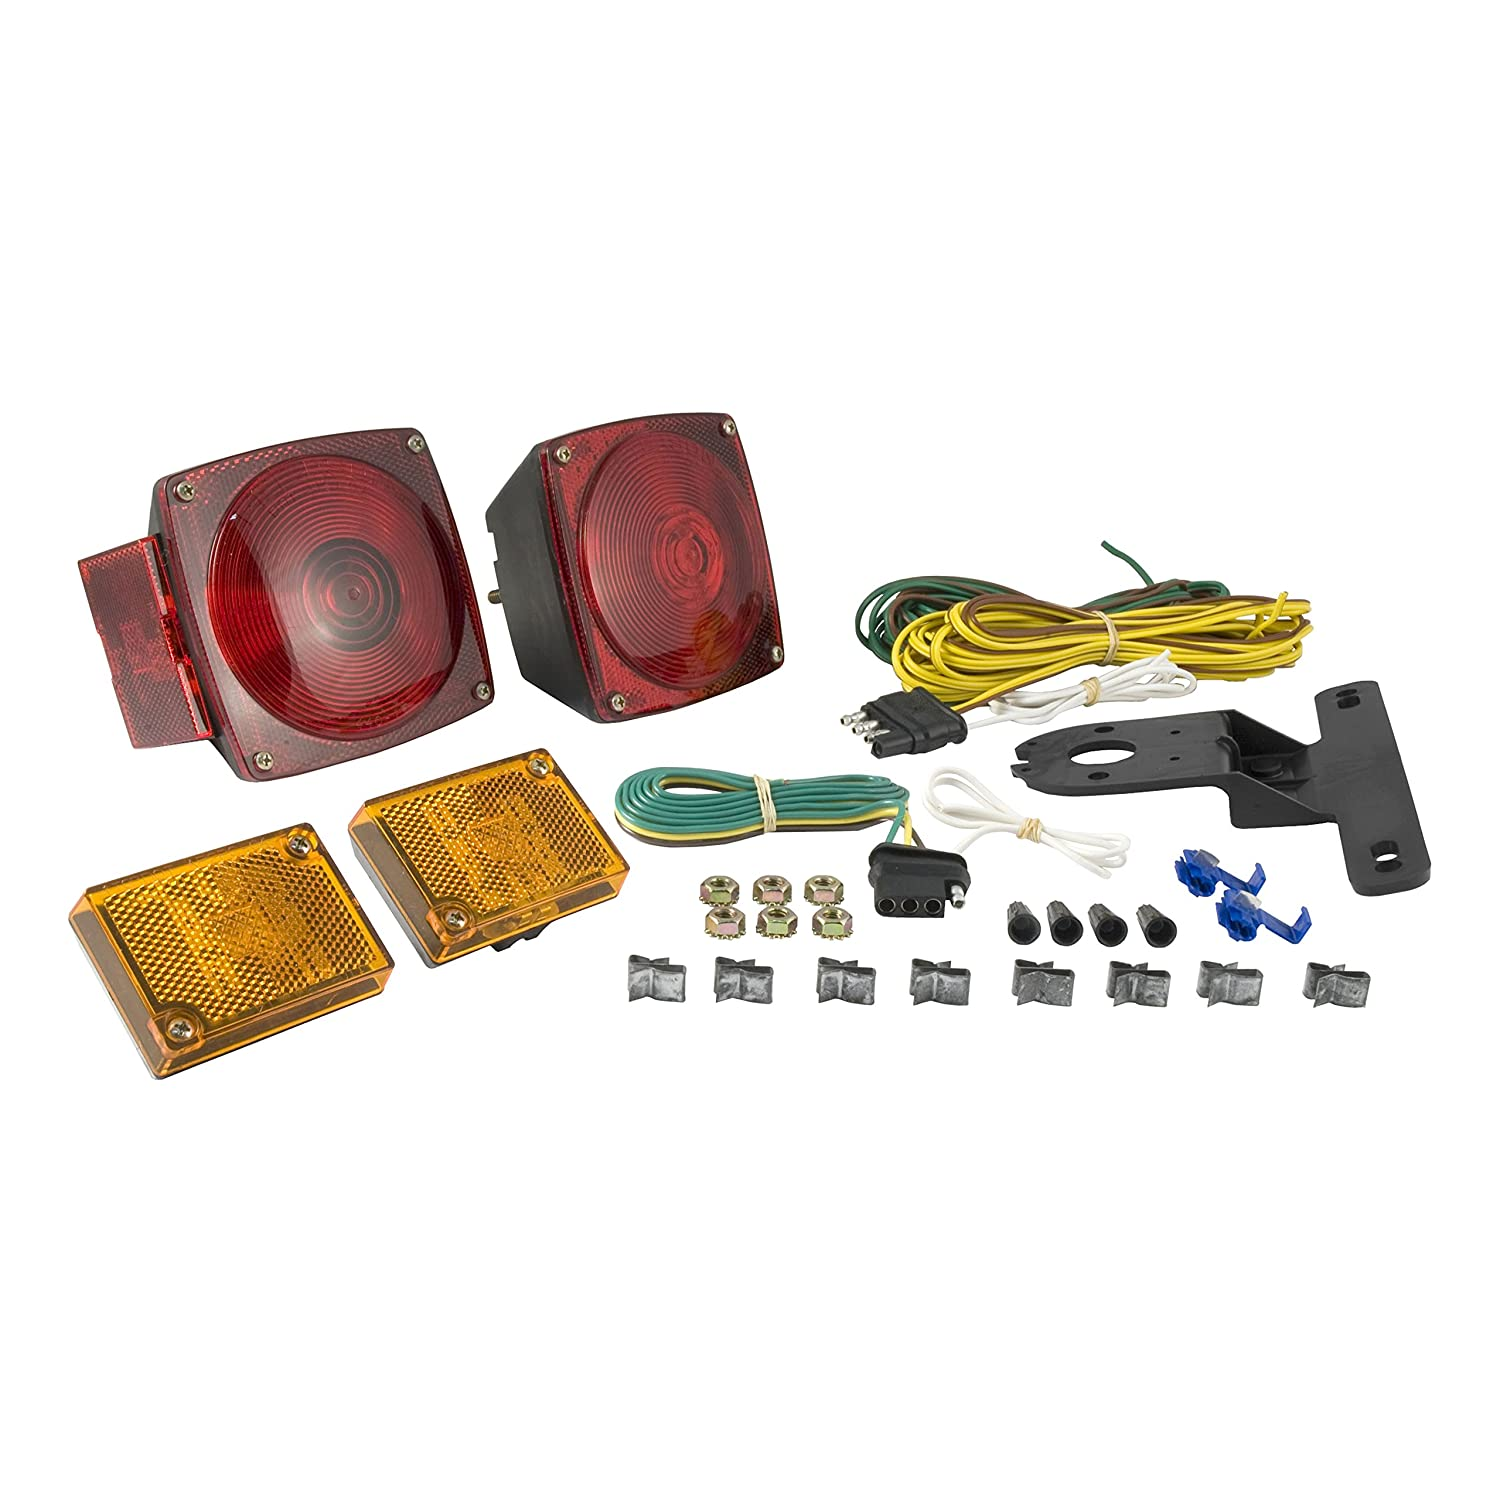 81Yho8uSr4L._SL1500_ amazon com curt 53540 trailer light kit automotive Plug in Trailer Wiring Kits at mifinder.co